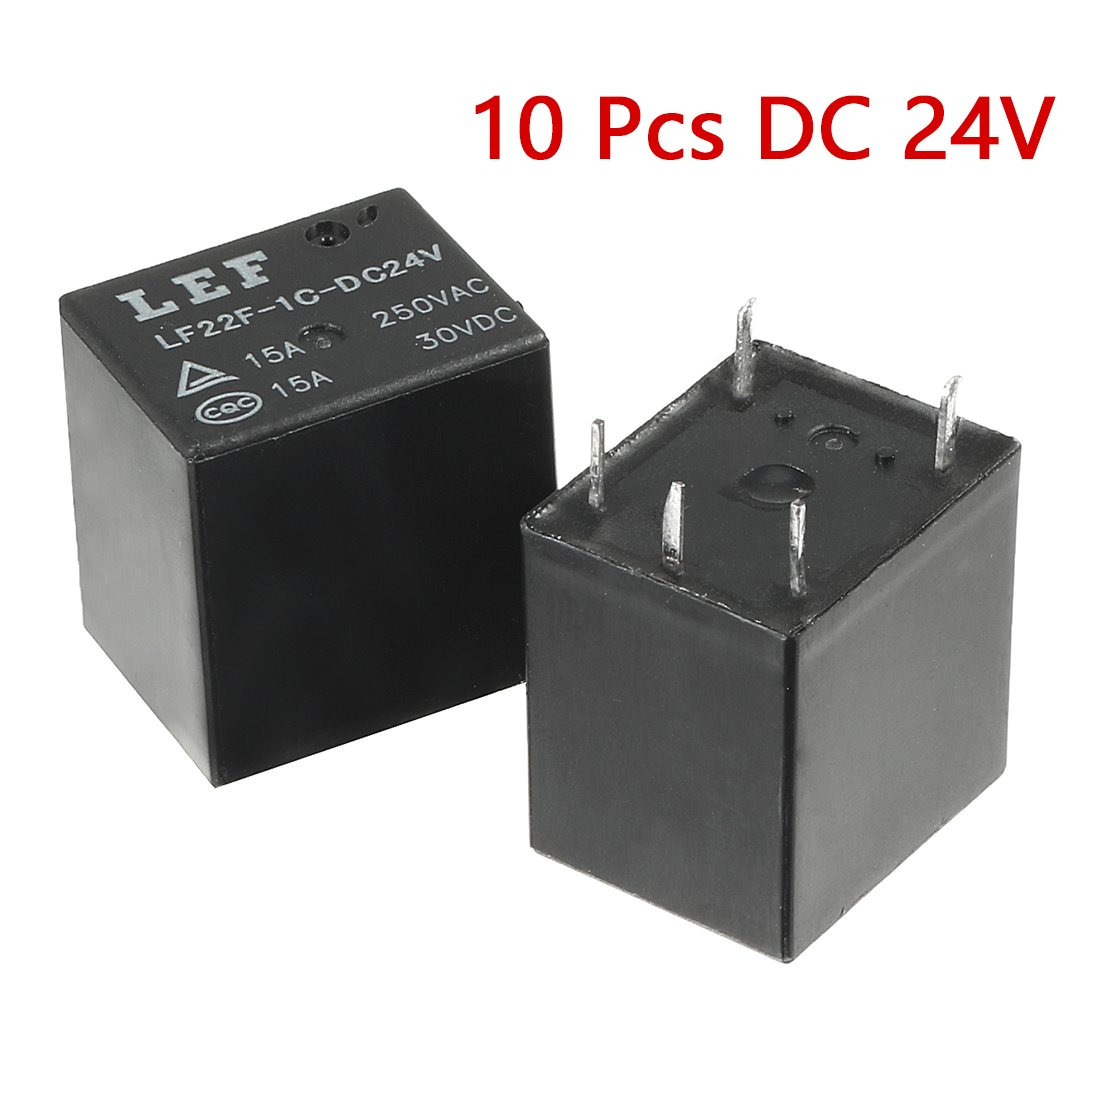 Uxcell 10 Pcs Dc 9v Coil 10a Spst 5 Pin Electromagnetic Hfd205 Dpdt 5v 2a Dip Relay Circuit Diagram Relays Pcb Type Jqc 3f Automotive